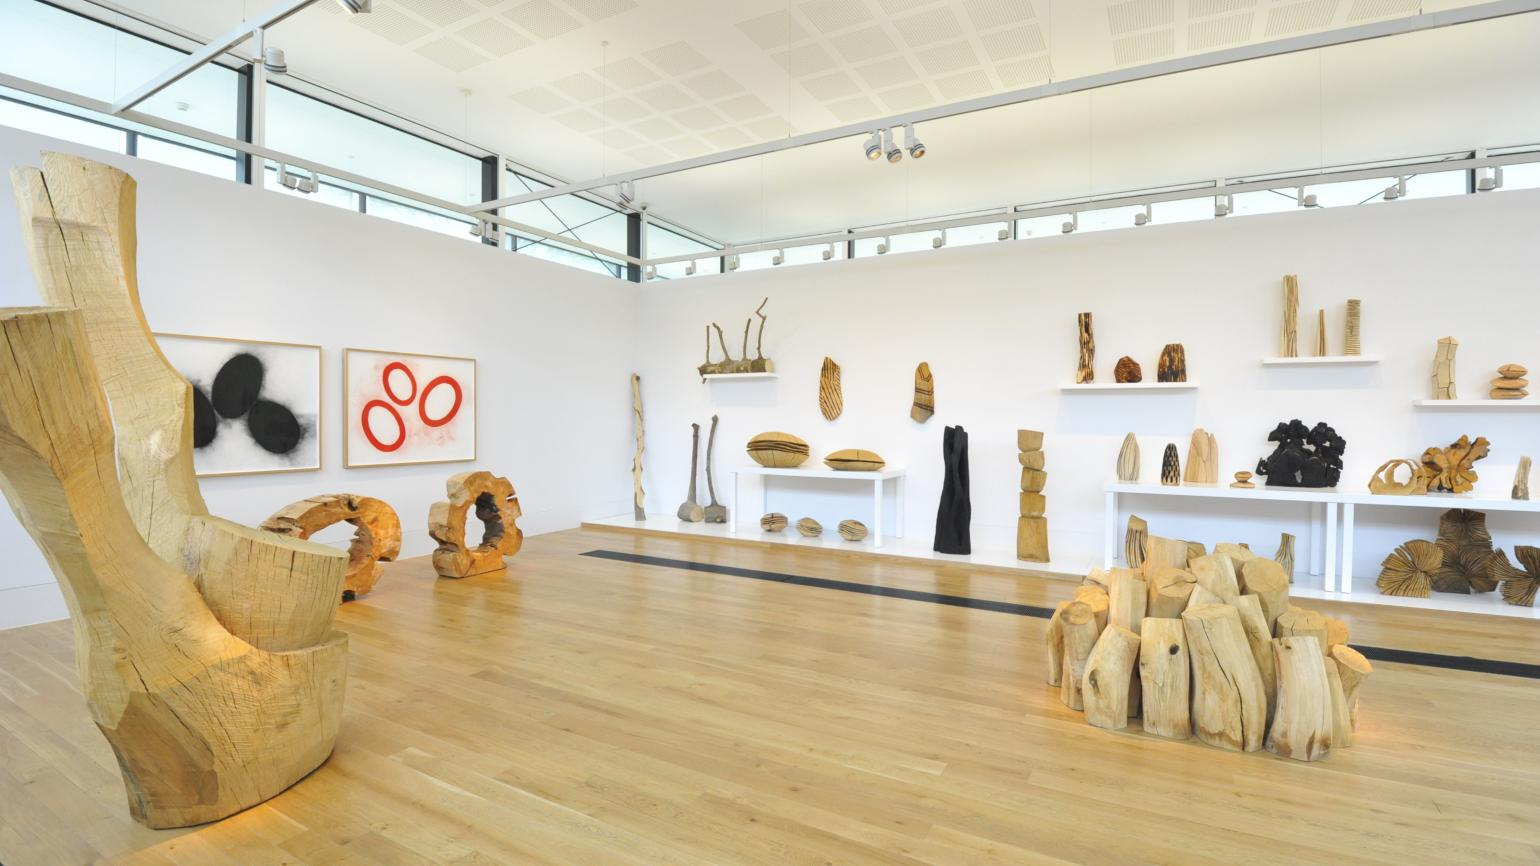 Wooden sculptures by David Nash exhibited in the Shirley Sherwood Gallery of Botanical Art